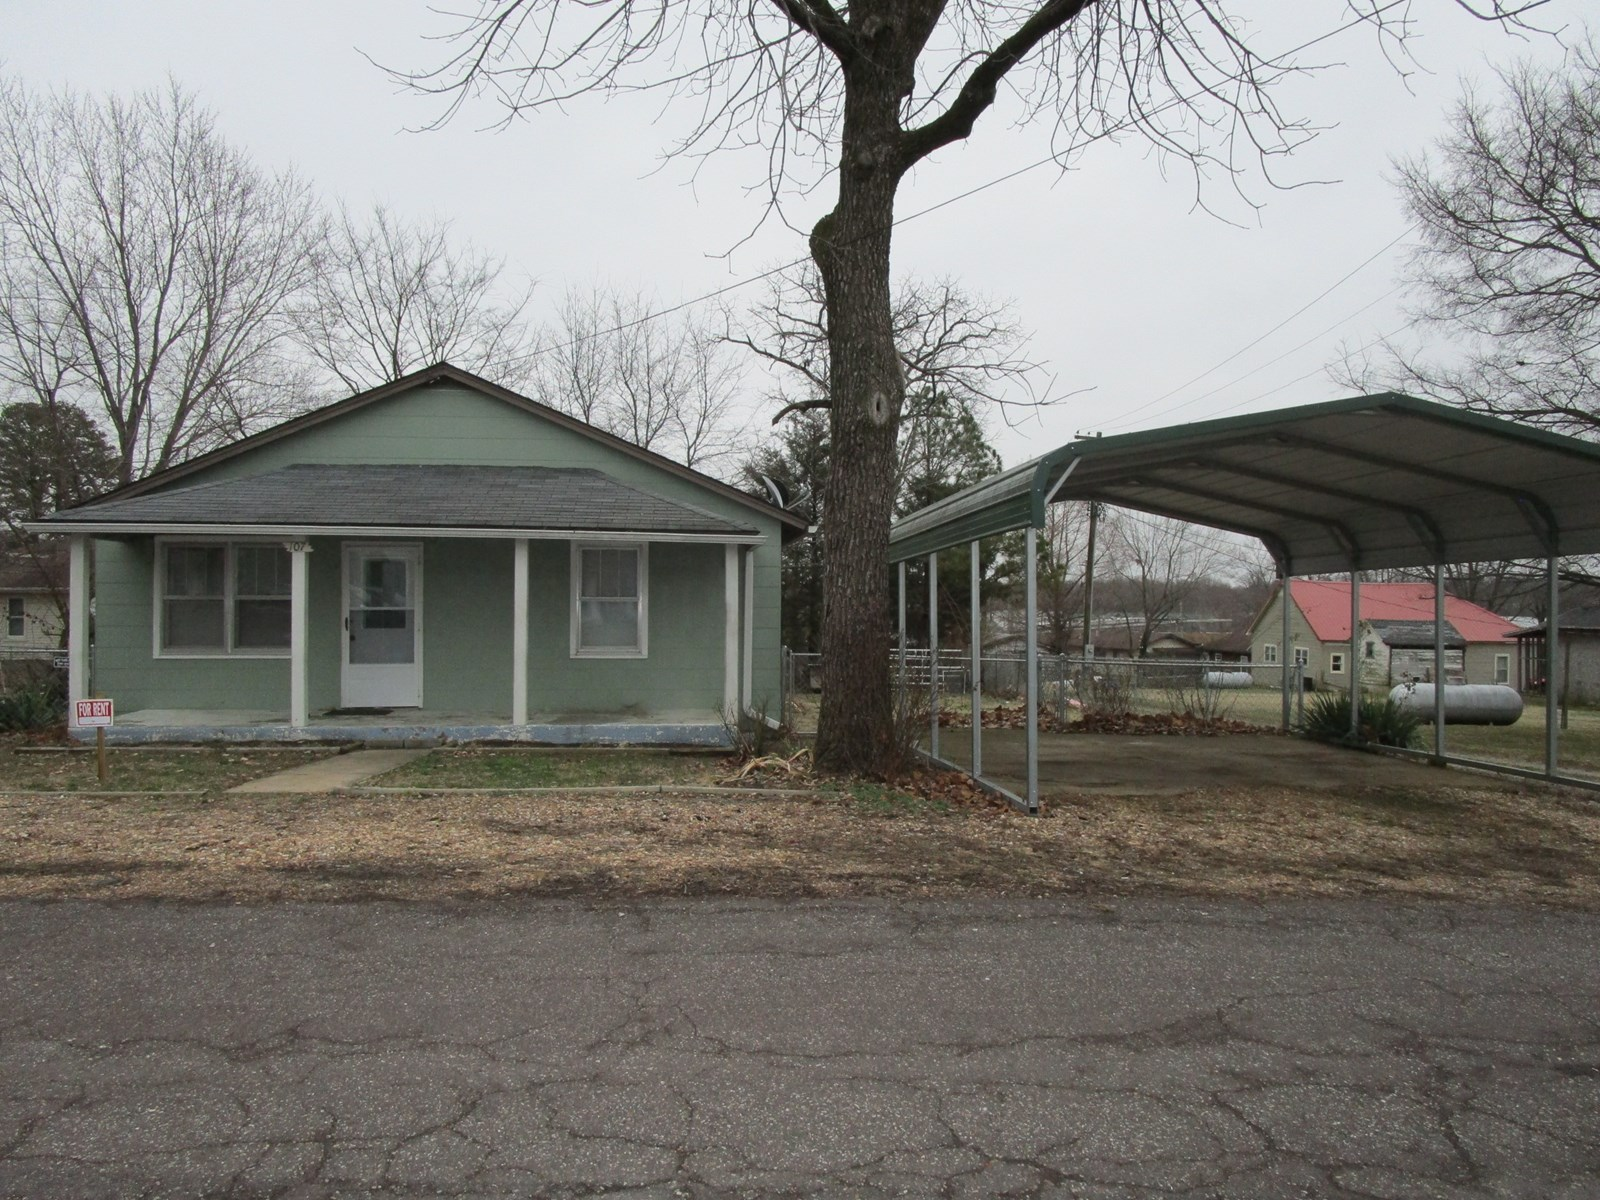 House in Town for Sale in South Central Missouri Ozarks